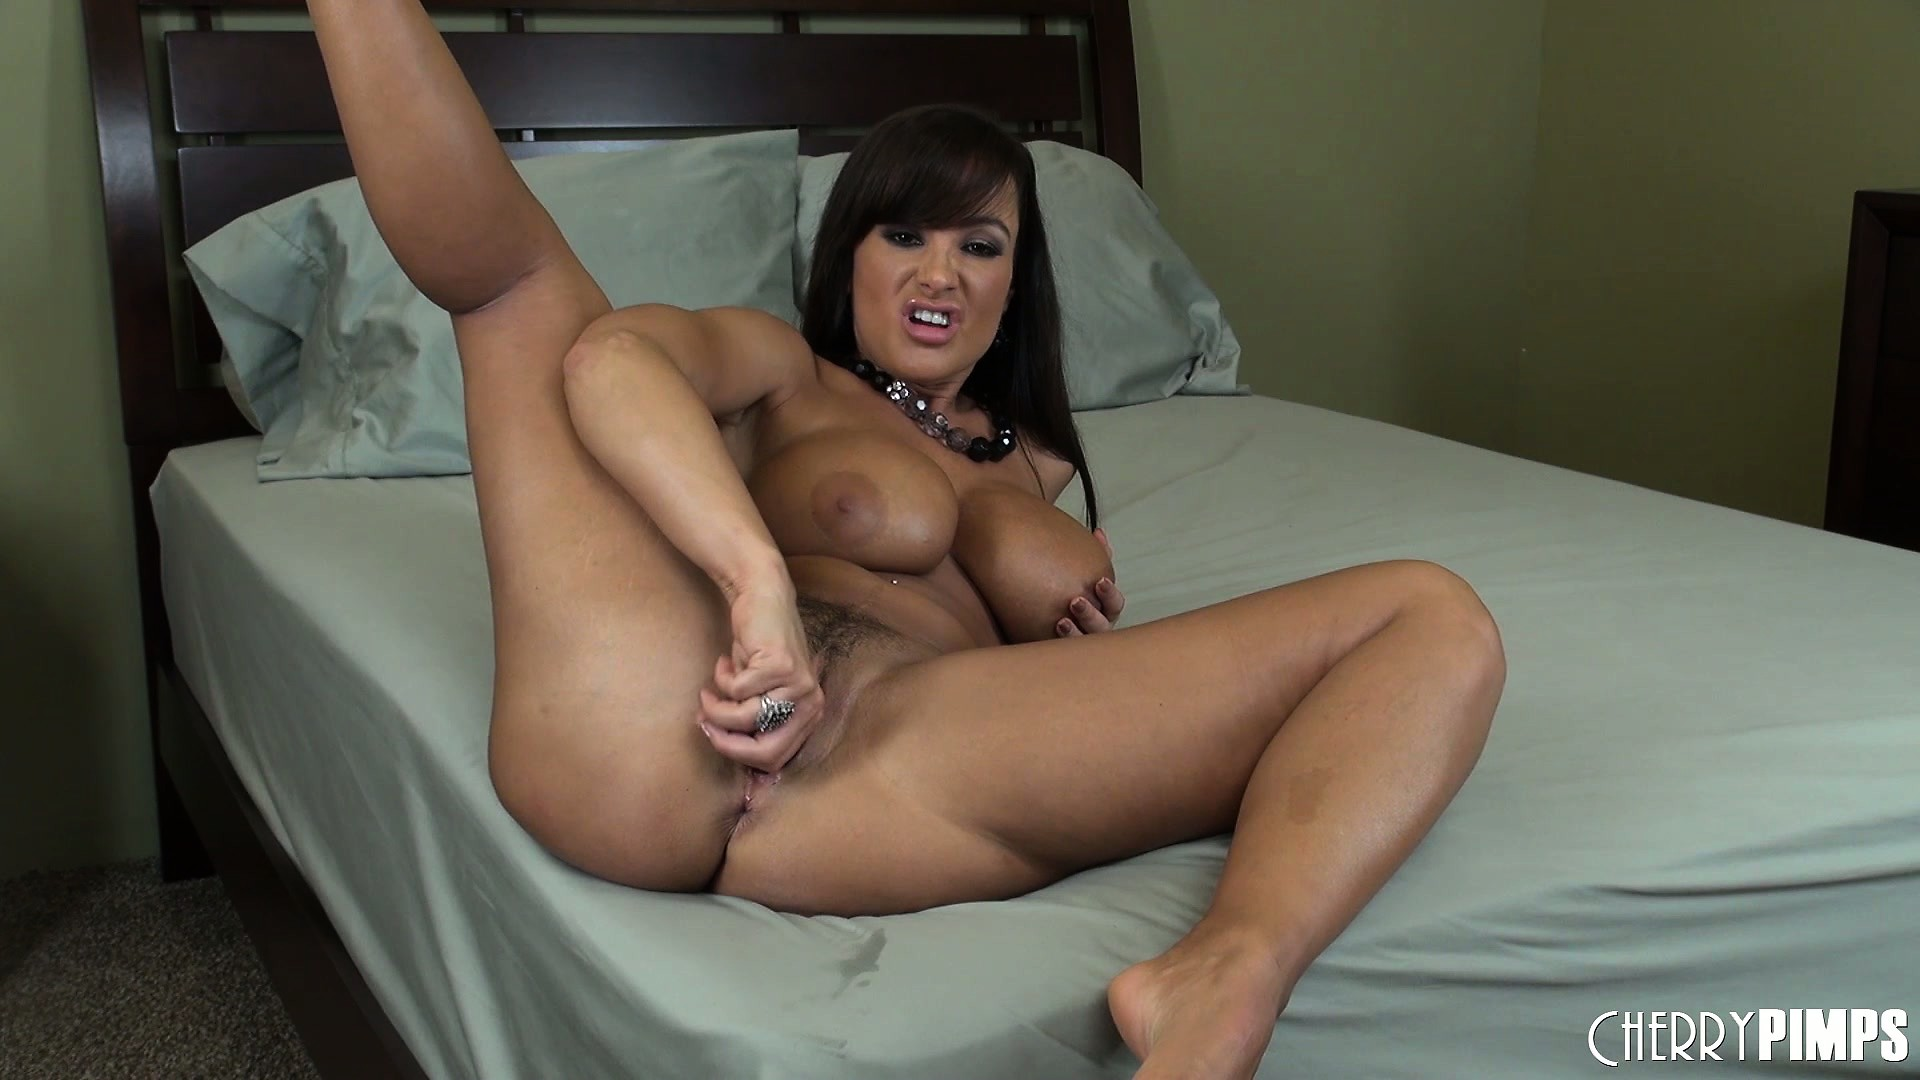 Porn Tube of Lisa Ann Wants You To Have A Good View And Spreads Her Legs Wide